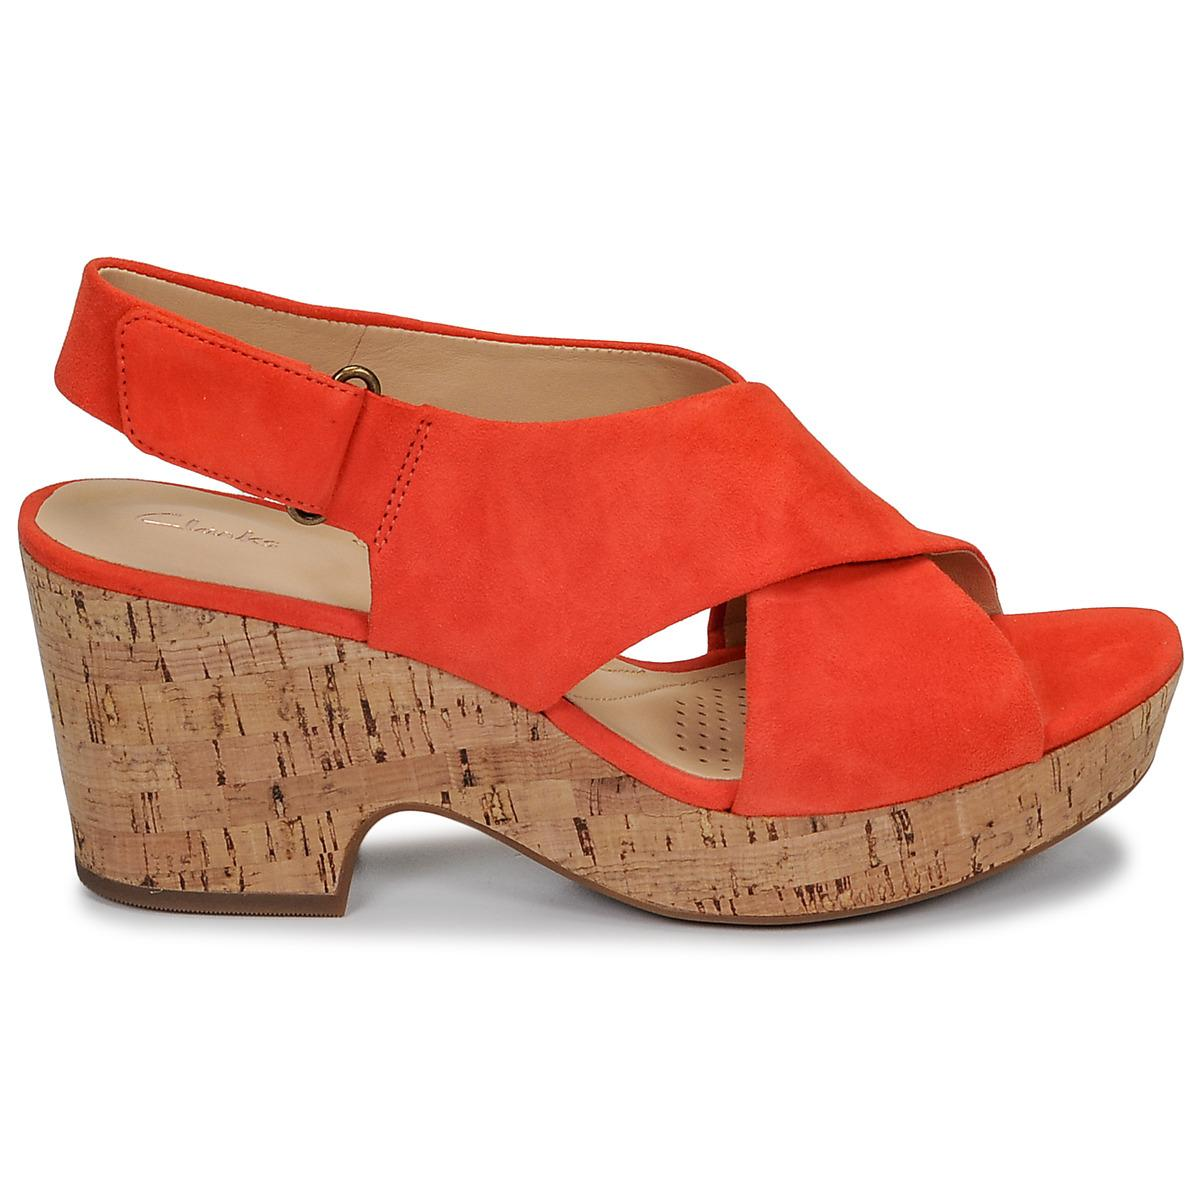 25b8838ed60c95 Clarks - Orange Maritsa Lara Sandals - Lyst. View fullscreen